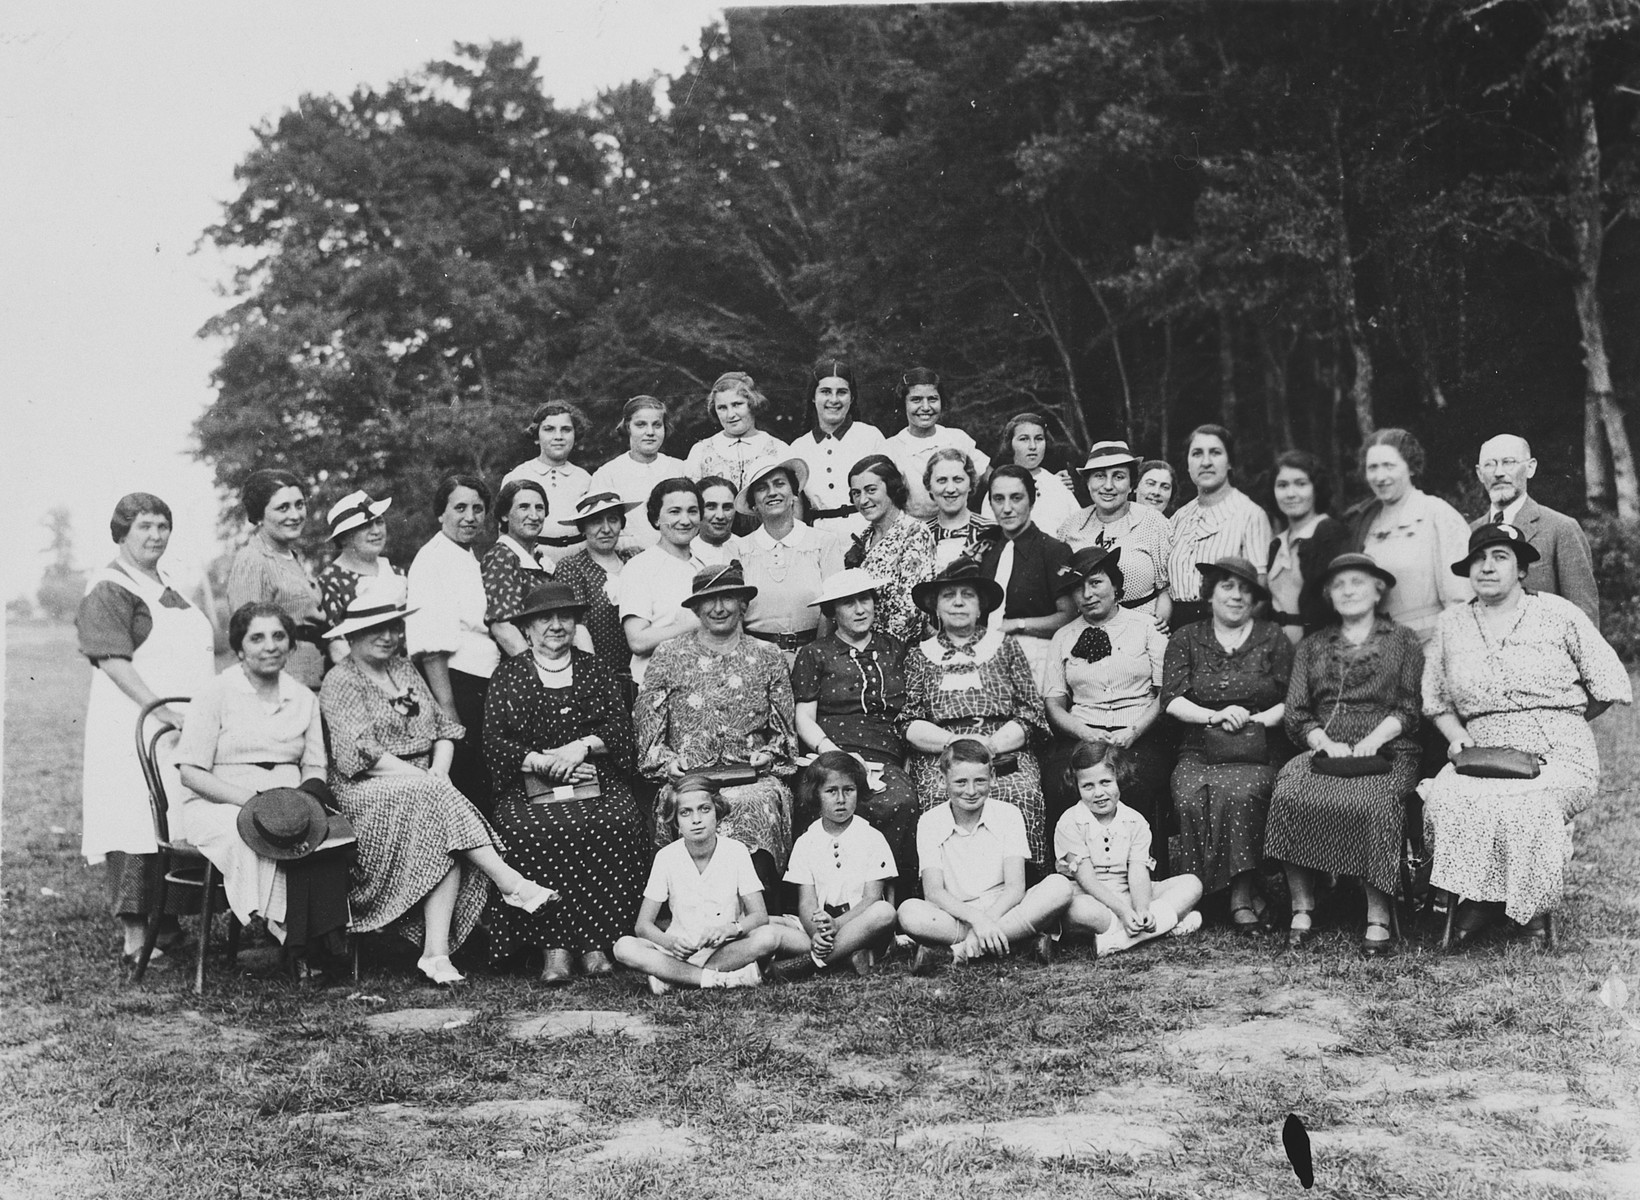 Slovak Jewish women and children go an a women's club outing to a camp in Pezinok.